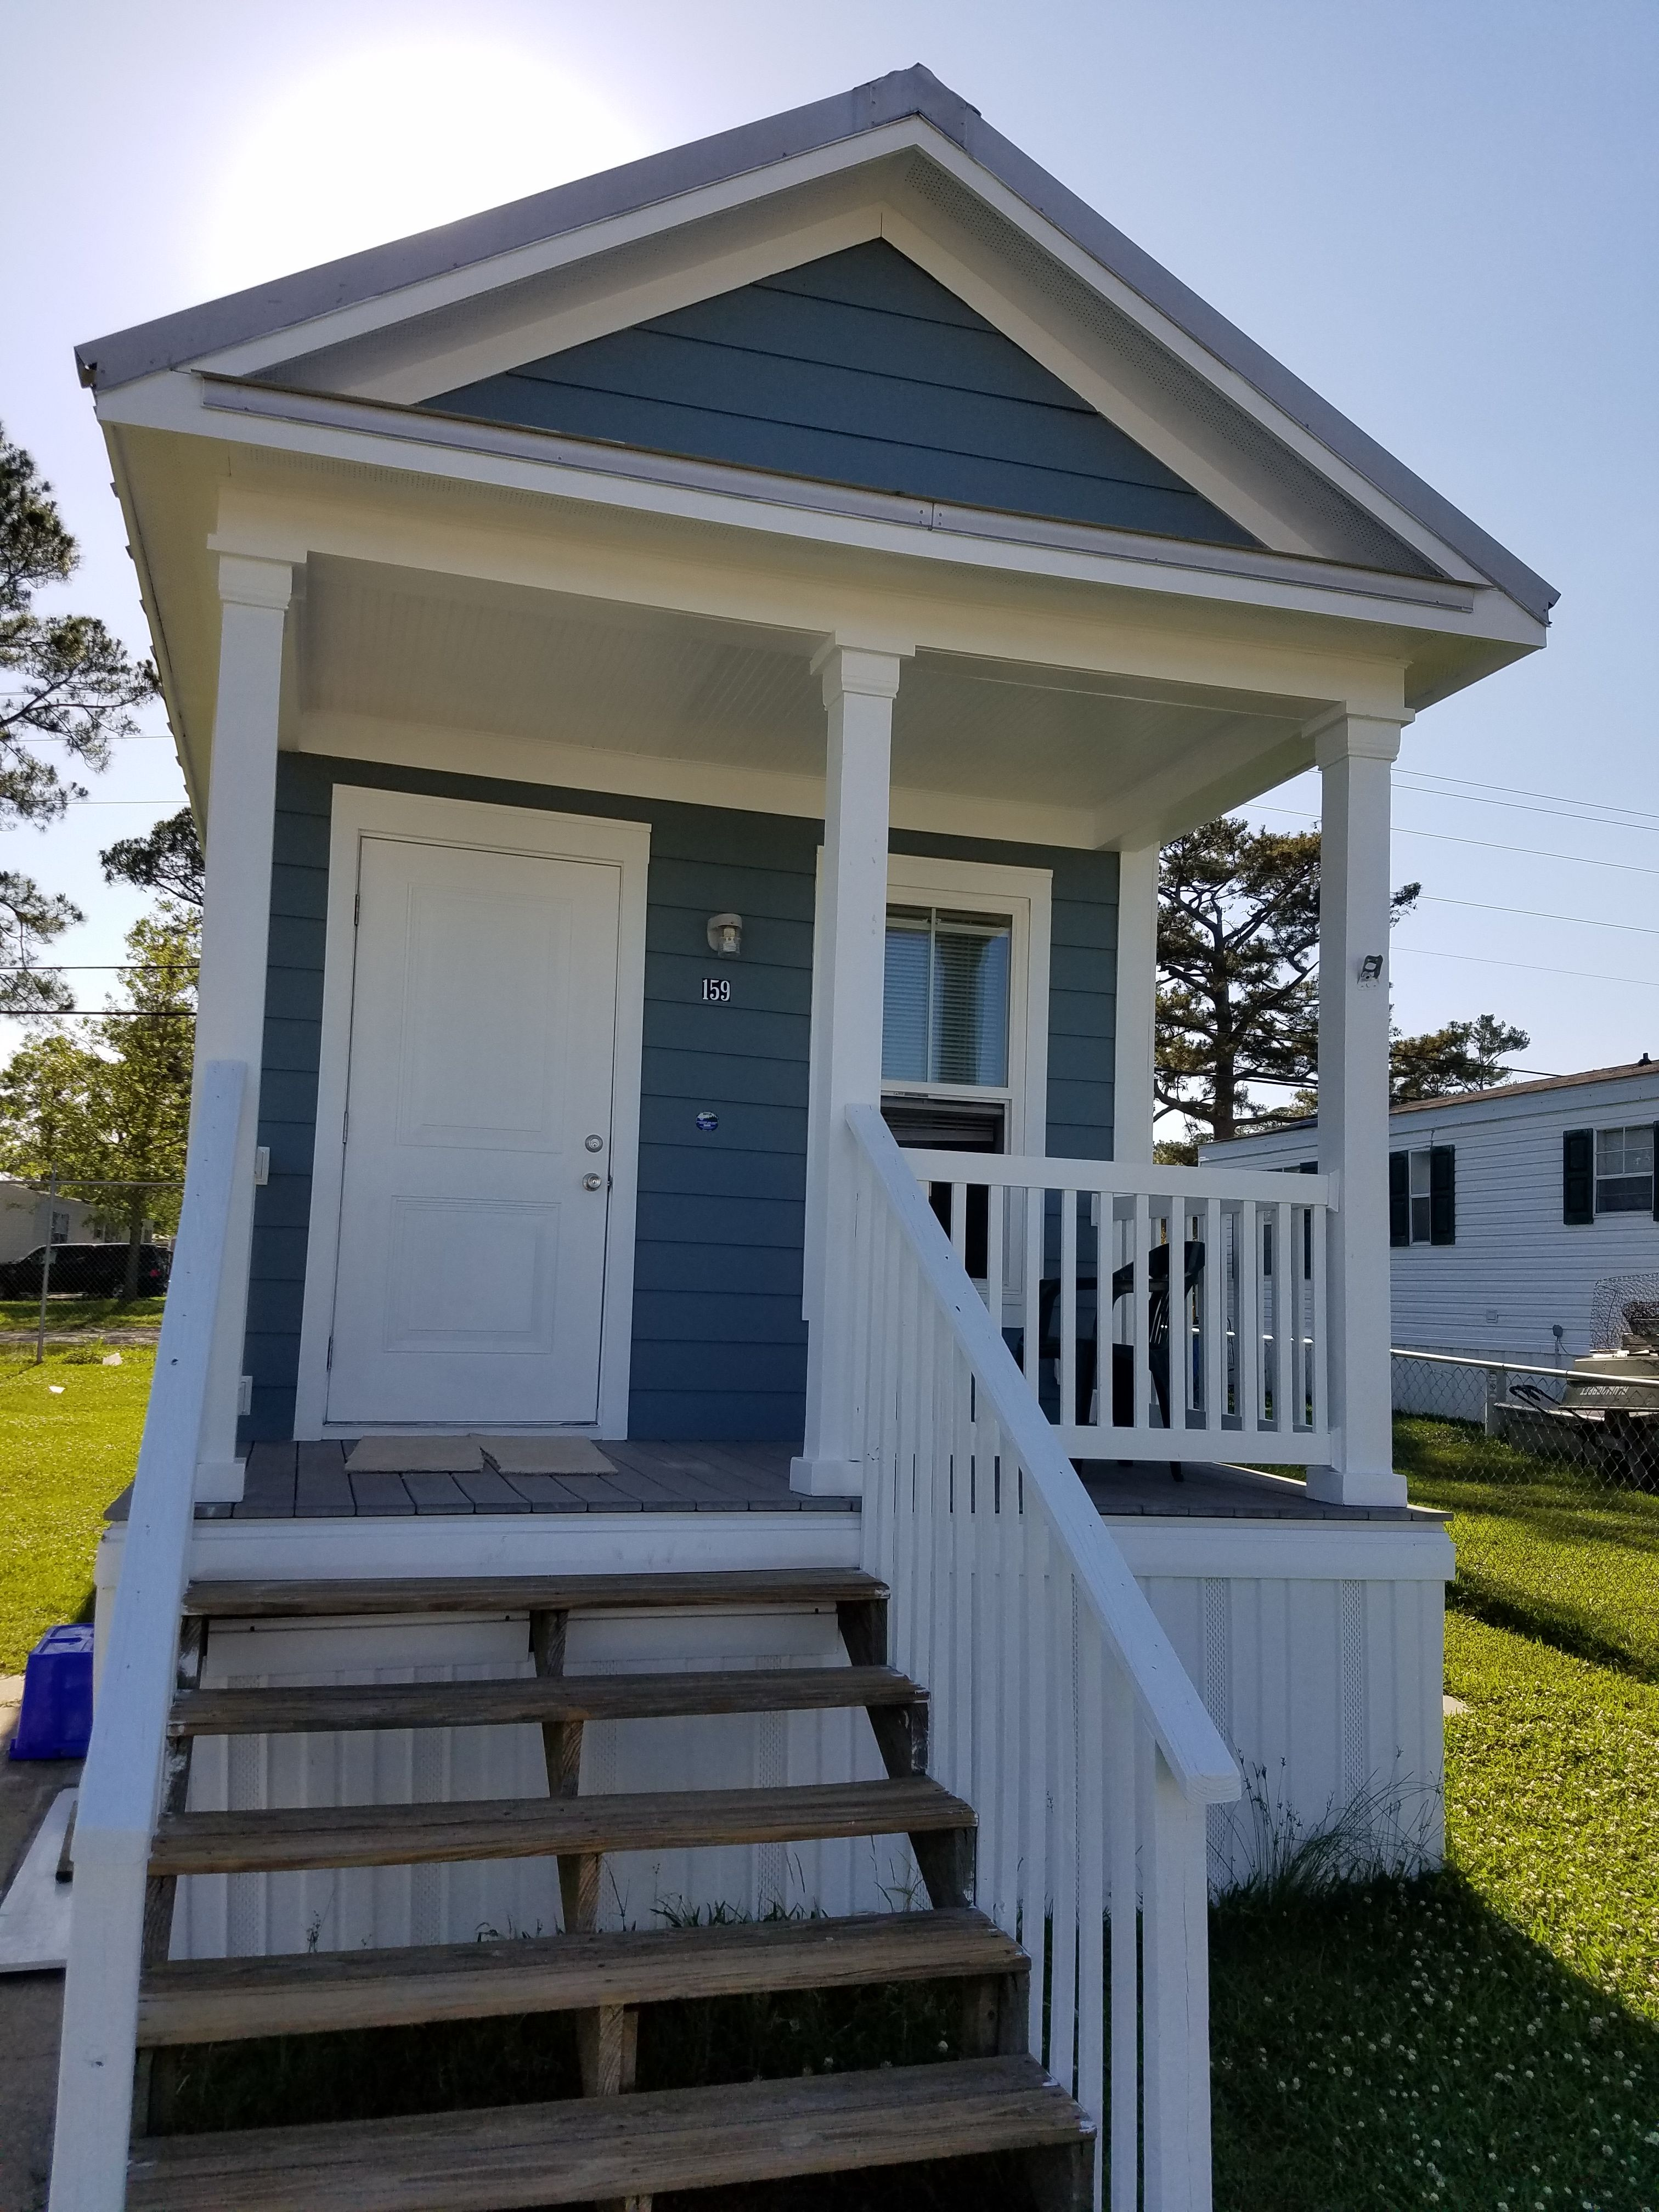 1Br/1Ba Katrina Cottage For Sale. 12u0027 X 40u0027   480 Sq.ft. Under Roof And 396  Sq.ft. Living Space. Very Nice! Must See To Appreciate!